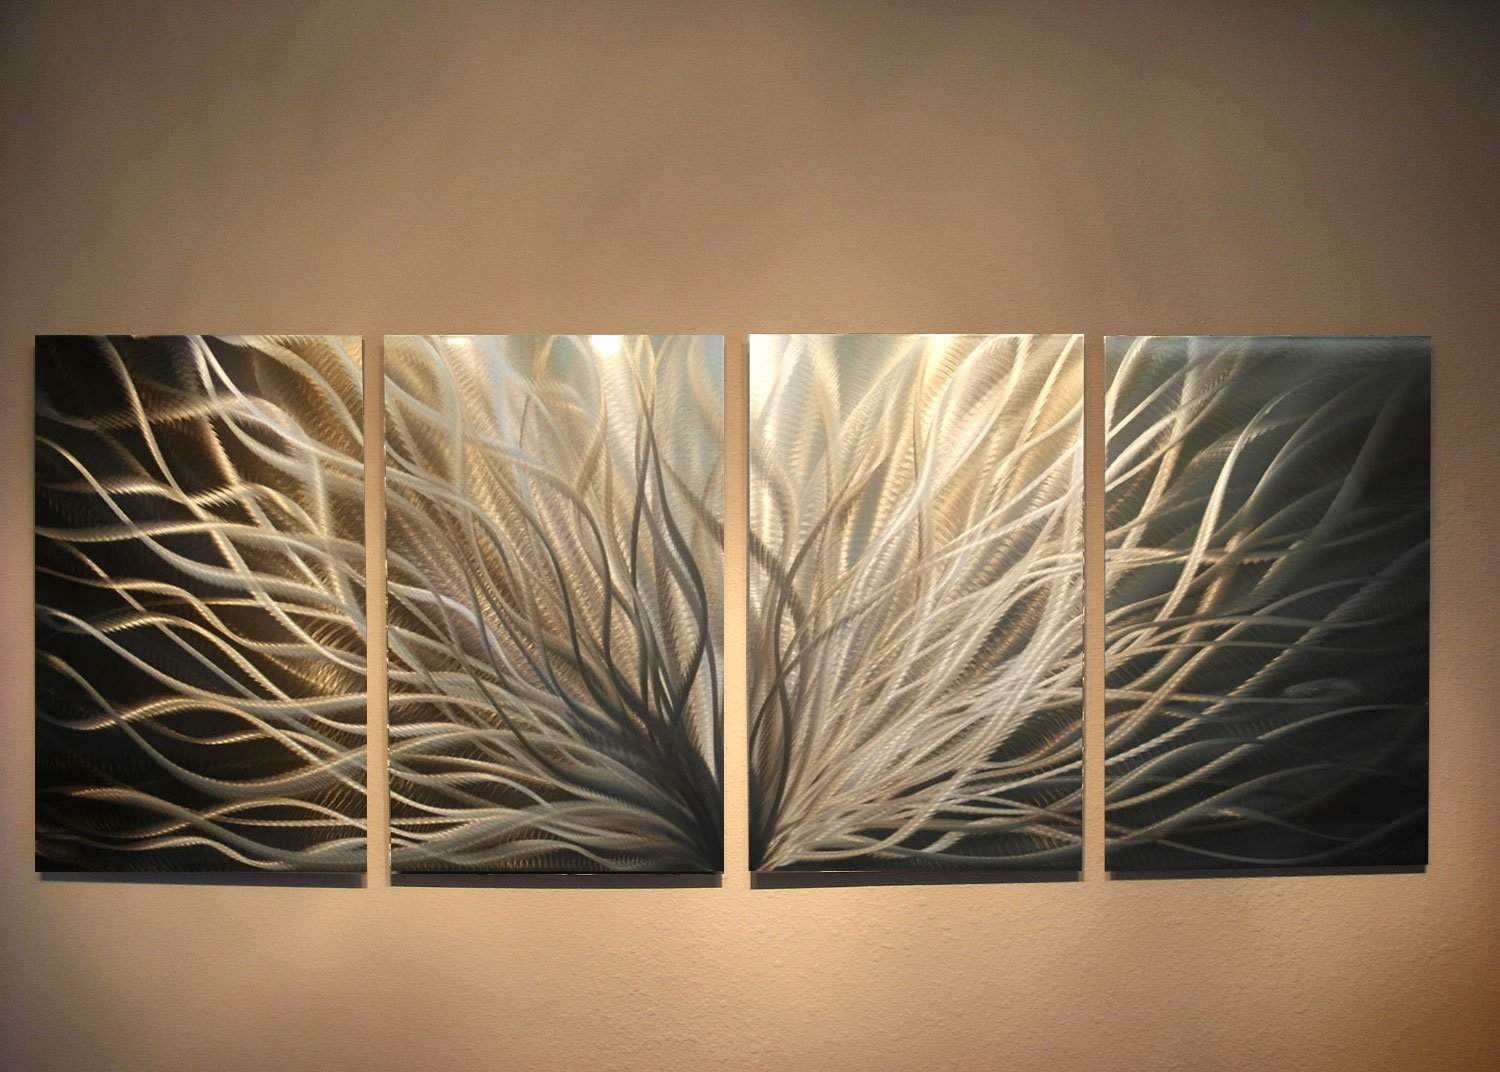 Metal Wall Art, Modern Home Decor, Abstract Sculpture Contemporary- Radiance Silver and Gold by Miles Shay